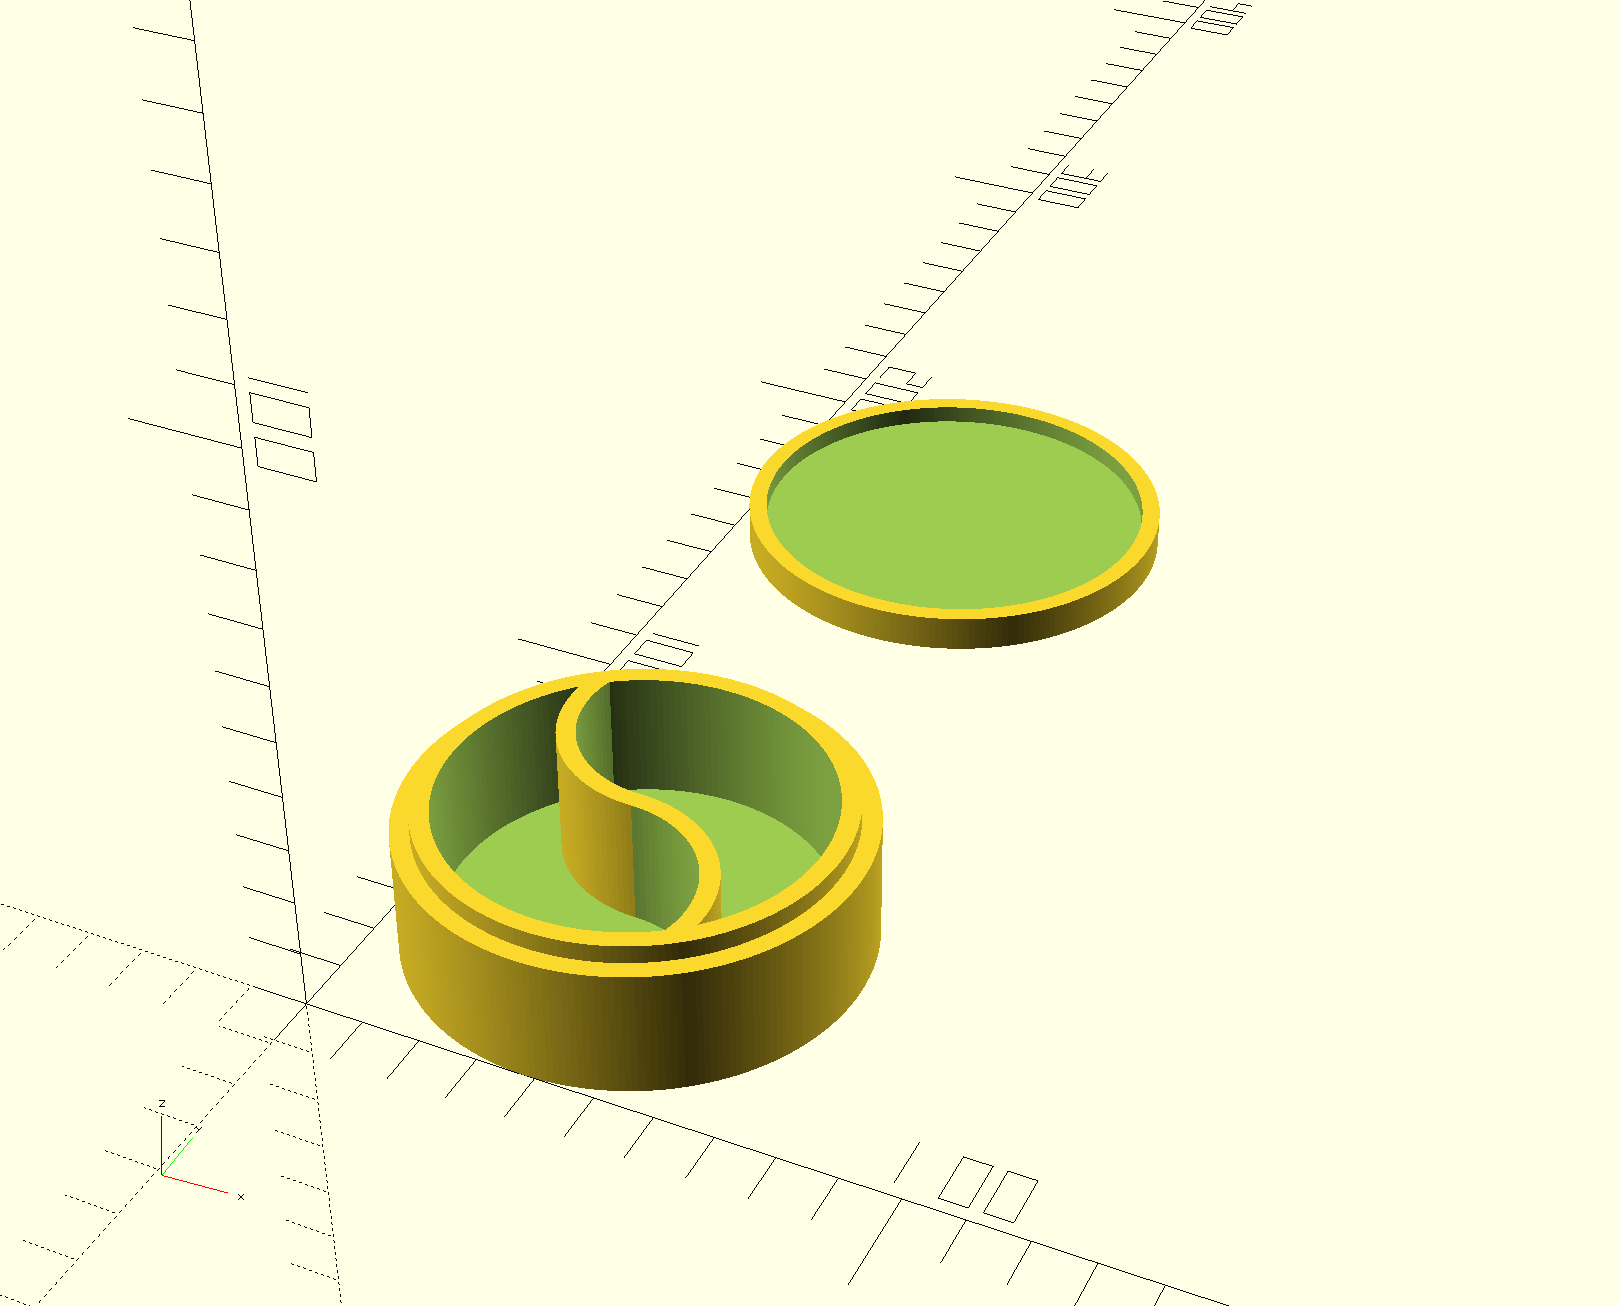 cncboxfitted_3x3_round_divider.png